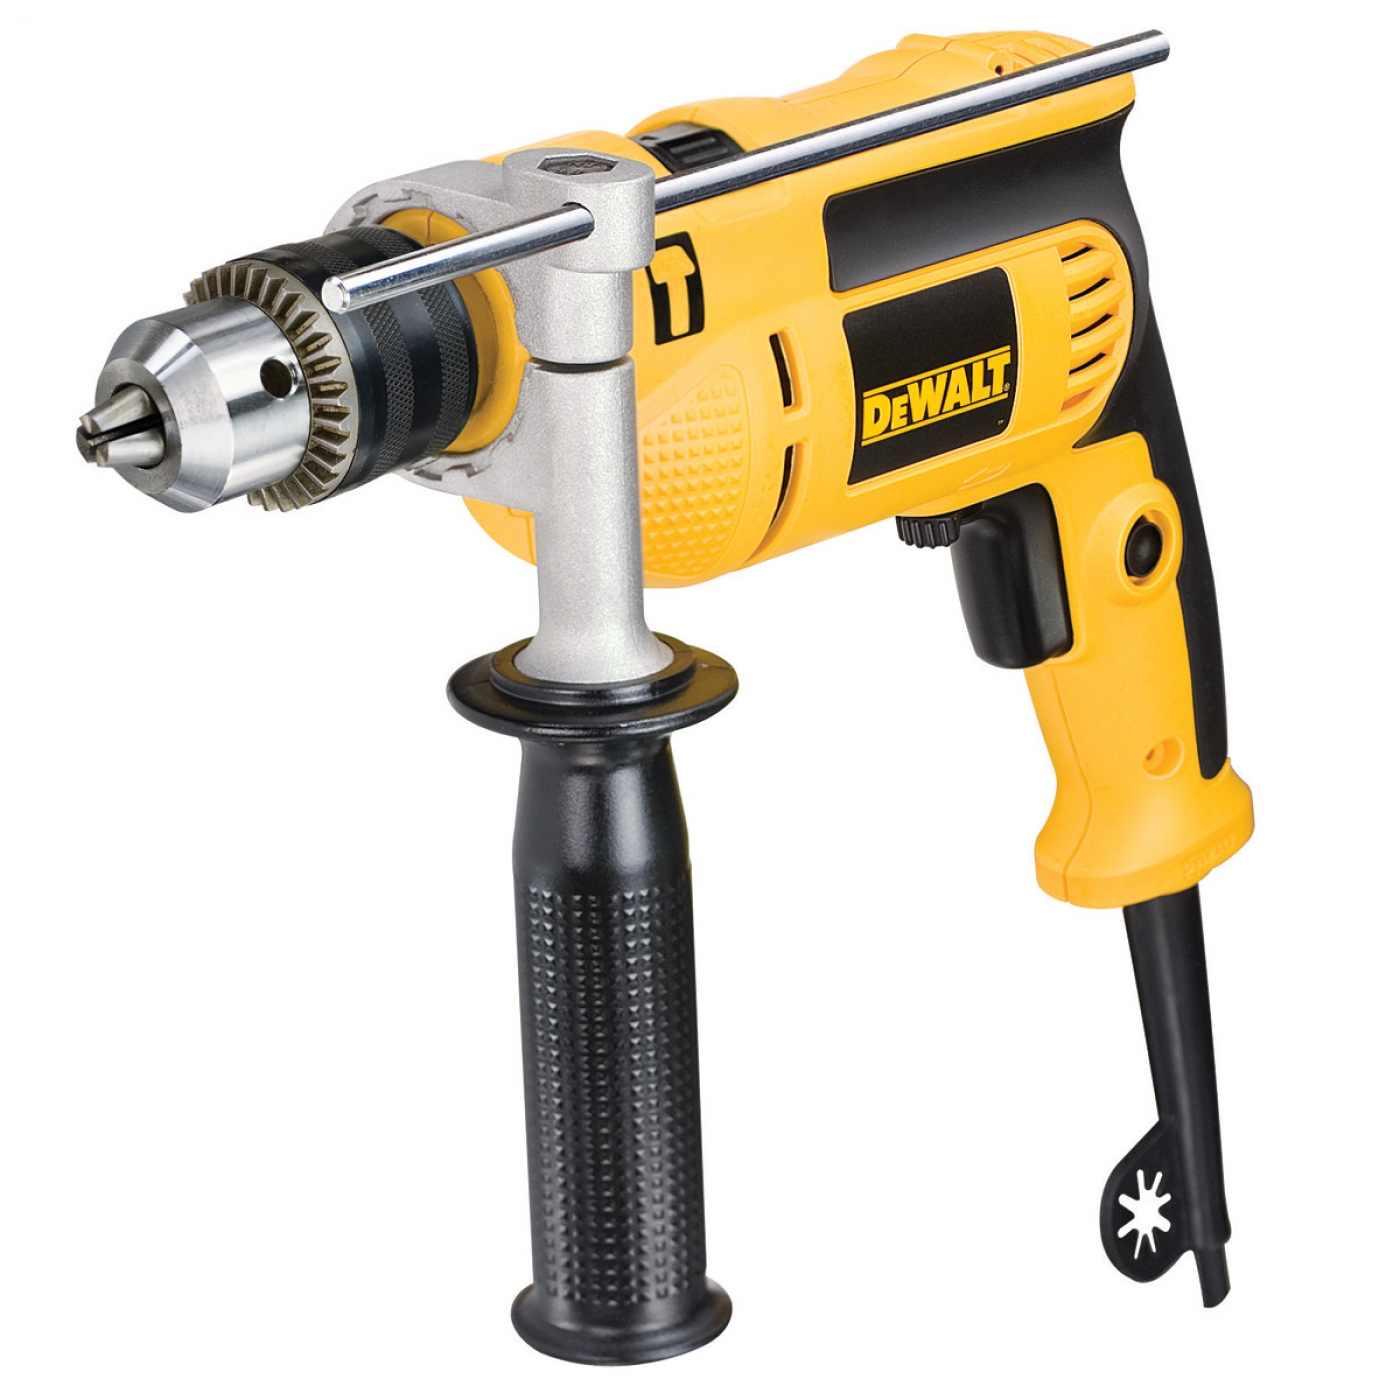 DEWALT DWD024K-LX Percussion Drill 13mm with Kit Box - (110V)